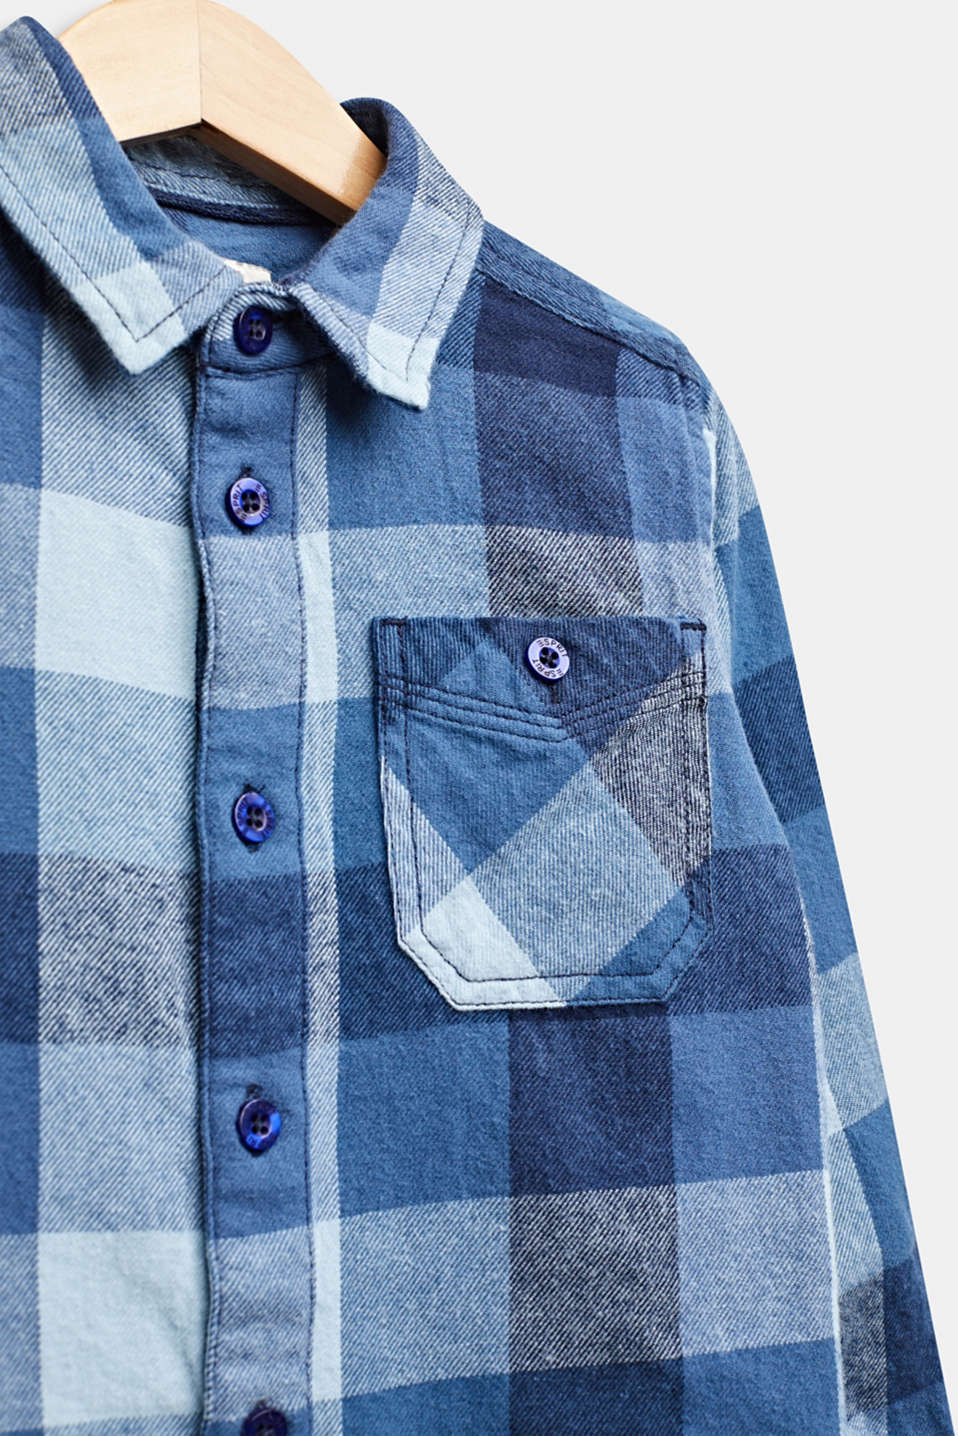 Flannel shirt with checks, 100% cotton, MIDNIGHT BLUE, detail image number 2